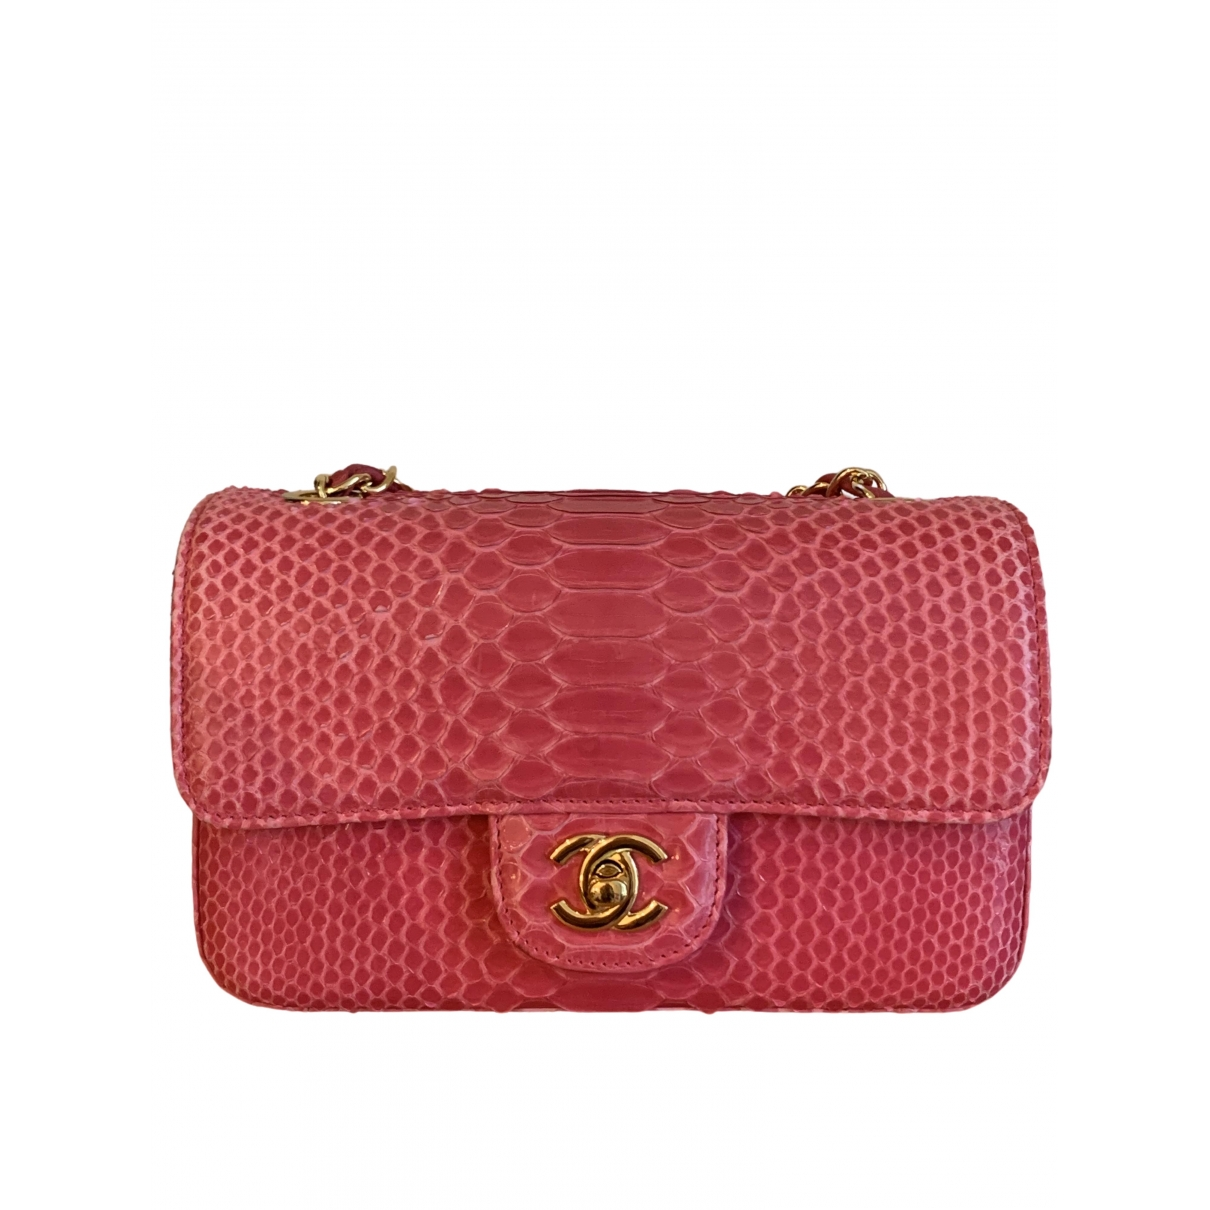 Chanel Timeless/Classique Handtasche in  Rosa Python